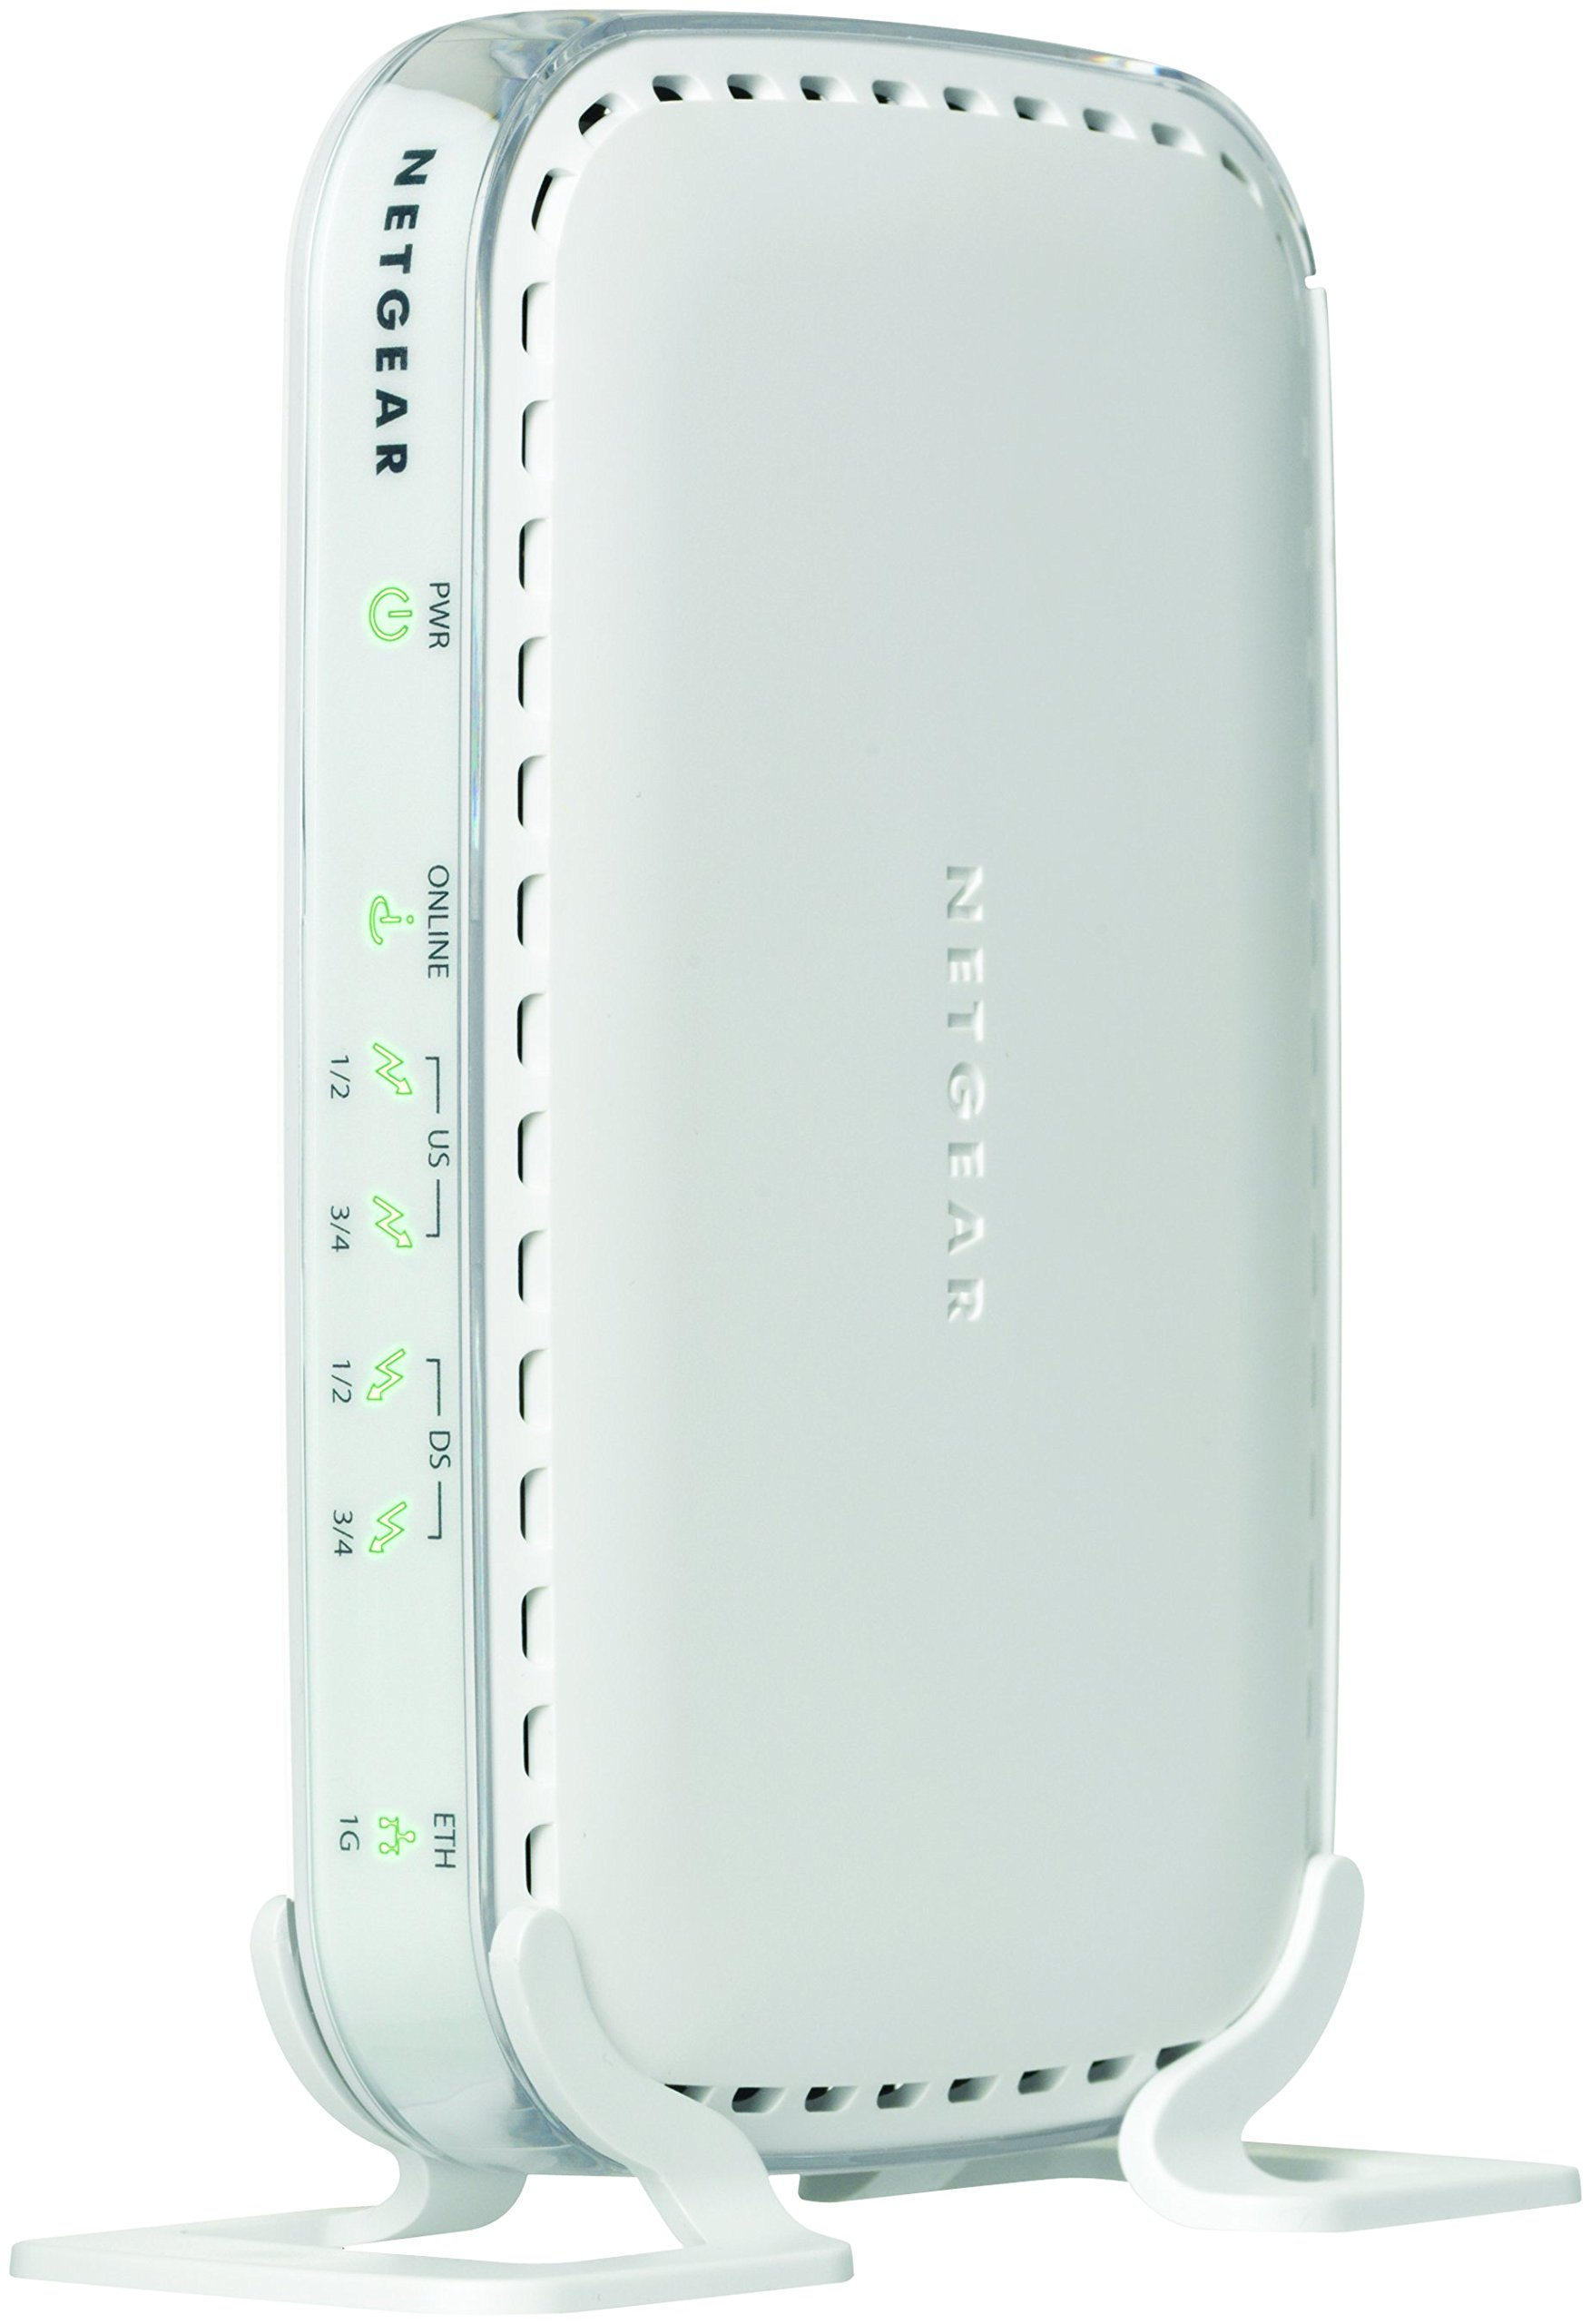 NETGEAR Certified Refurbished CMD31T-100NAR (4x4) Cable Modem - for Comcast, Cox, Cablevision